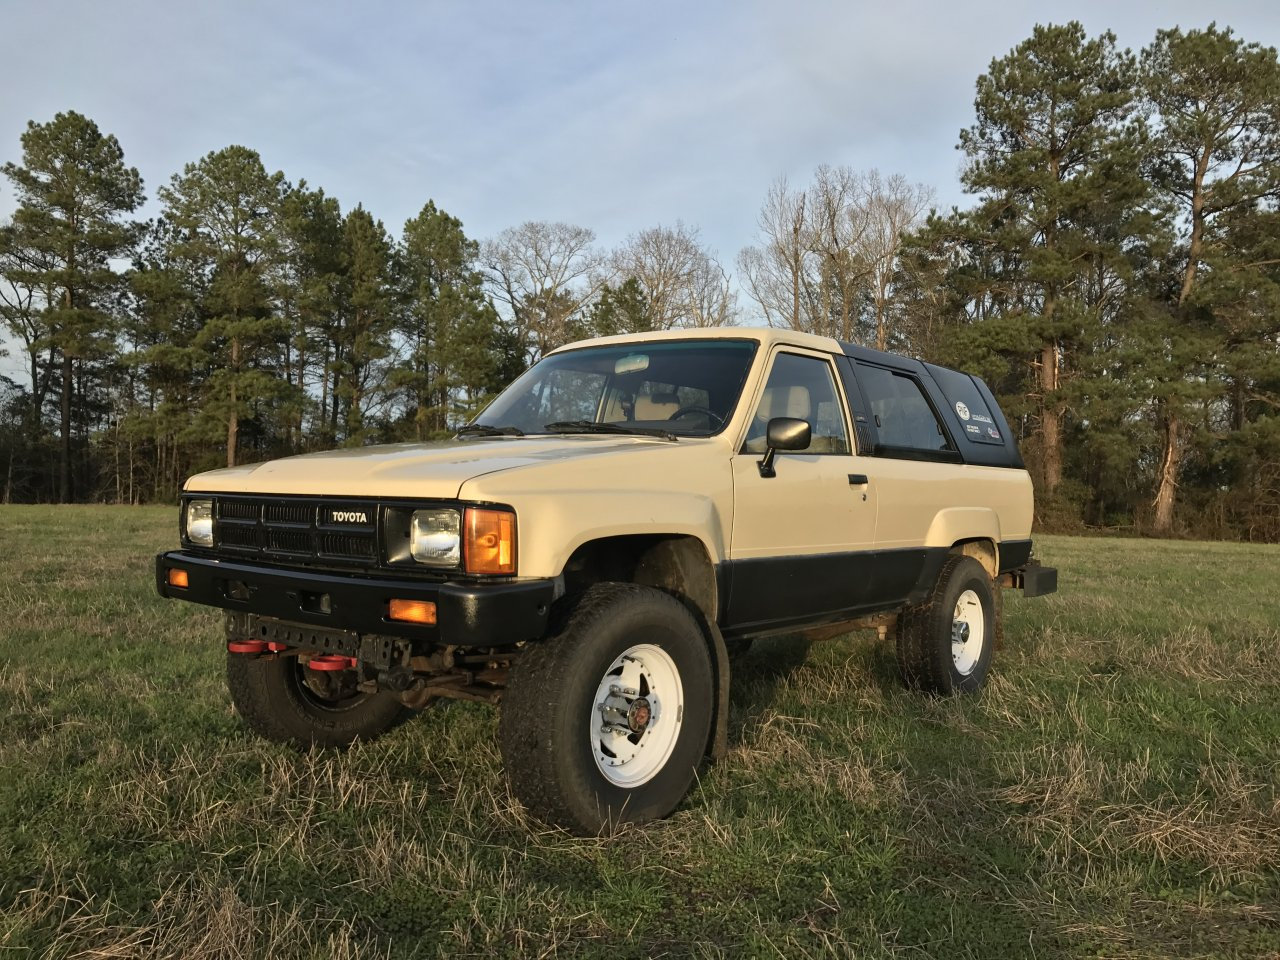 for sale 1985 toyota 4runner 22re with factory solid axle ih8mud forum. Black Bedroom Furniture Sets. Home Design Ideas